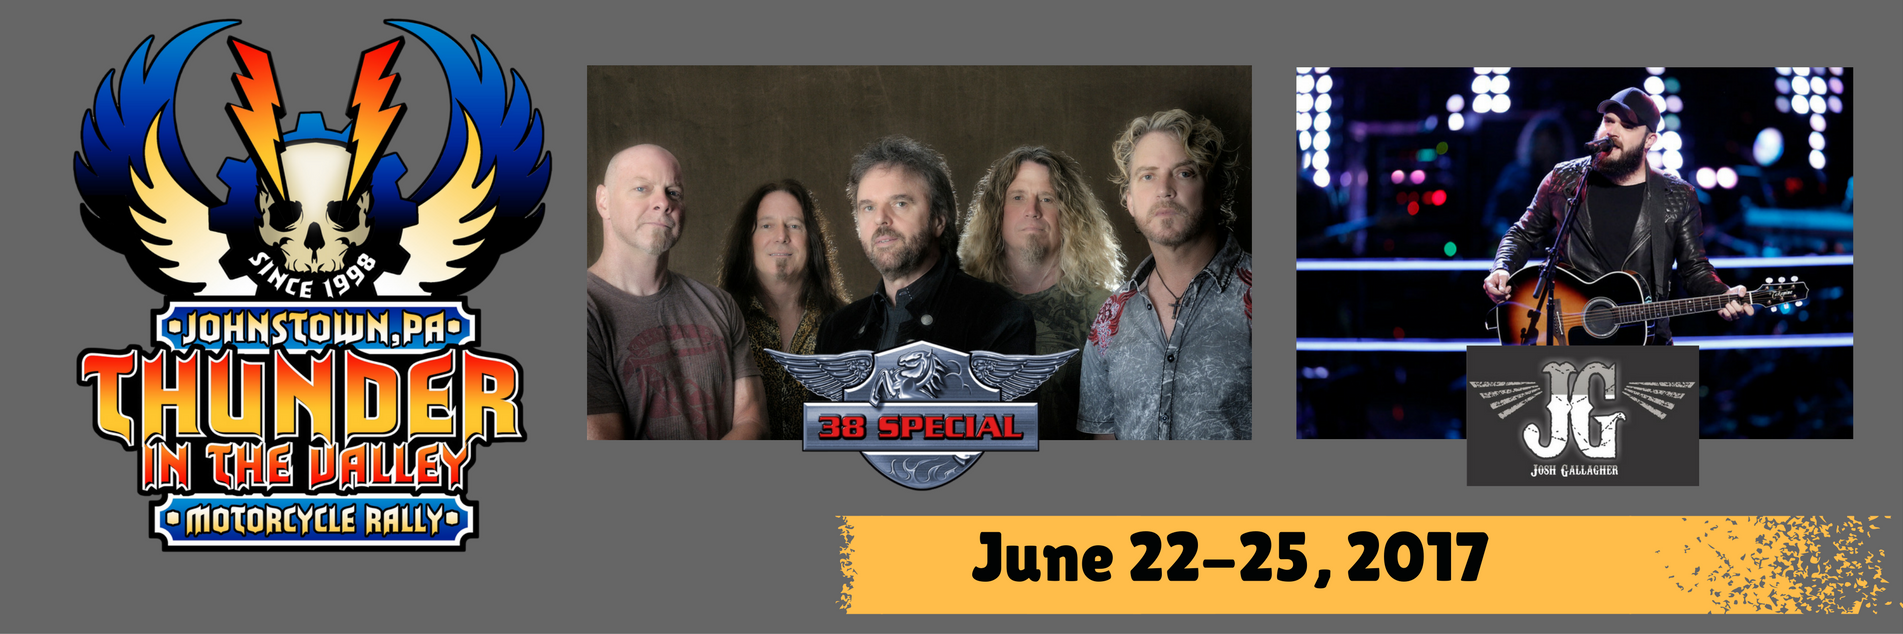 Visit Johnstown PA | Thunder in the Valley | Stage Schedule